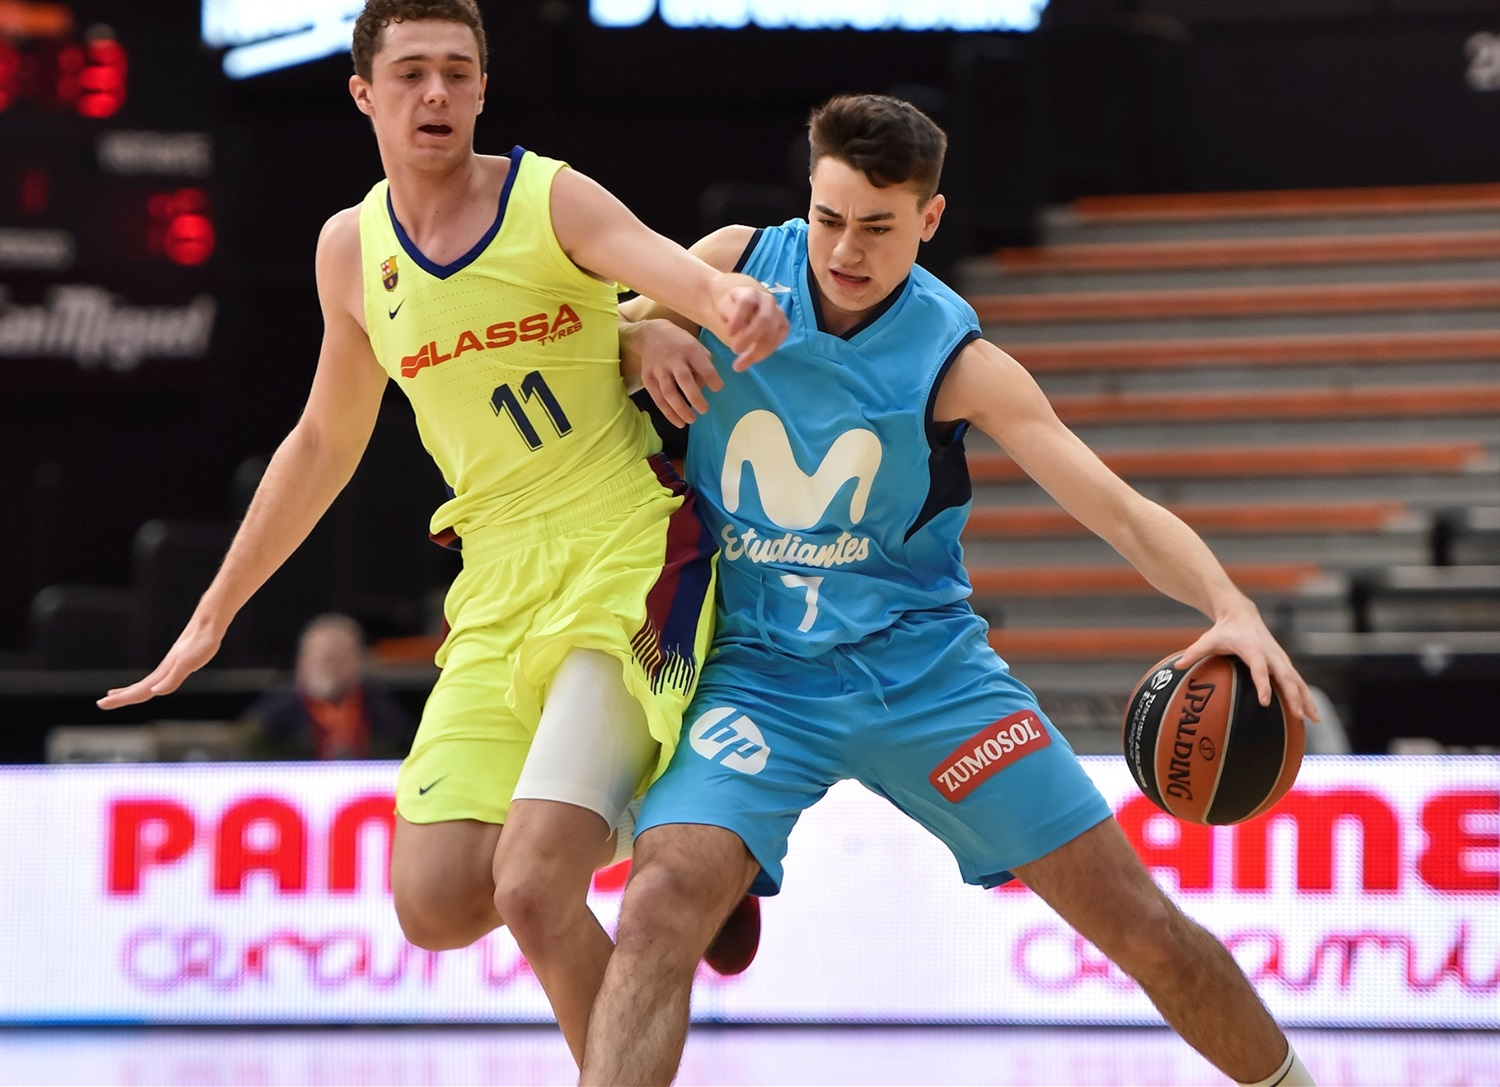 Eduardo Manzano - U18 Movistar Estudiantes Madrid (photo Miguel Angel Polo - Valencia) - JT18